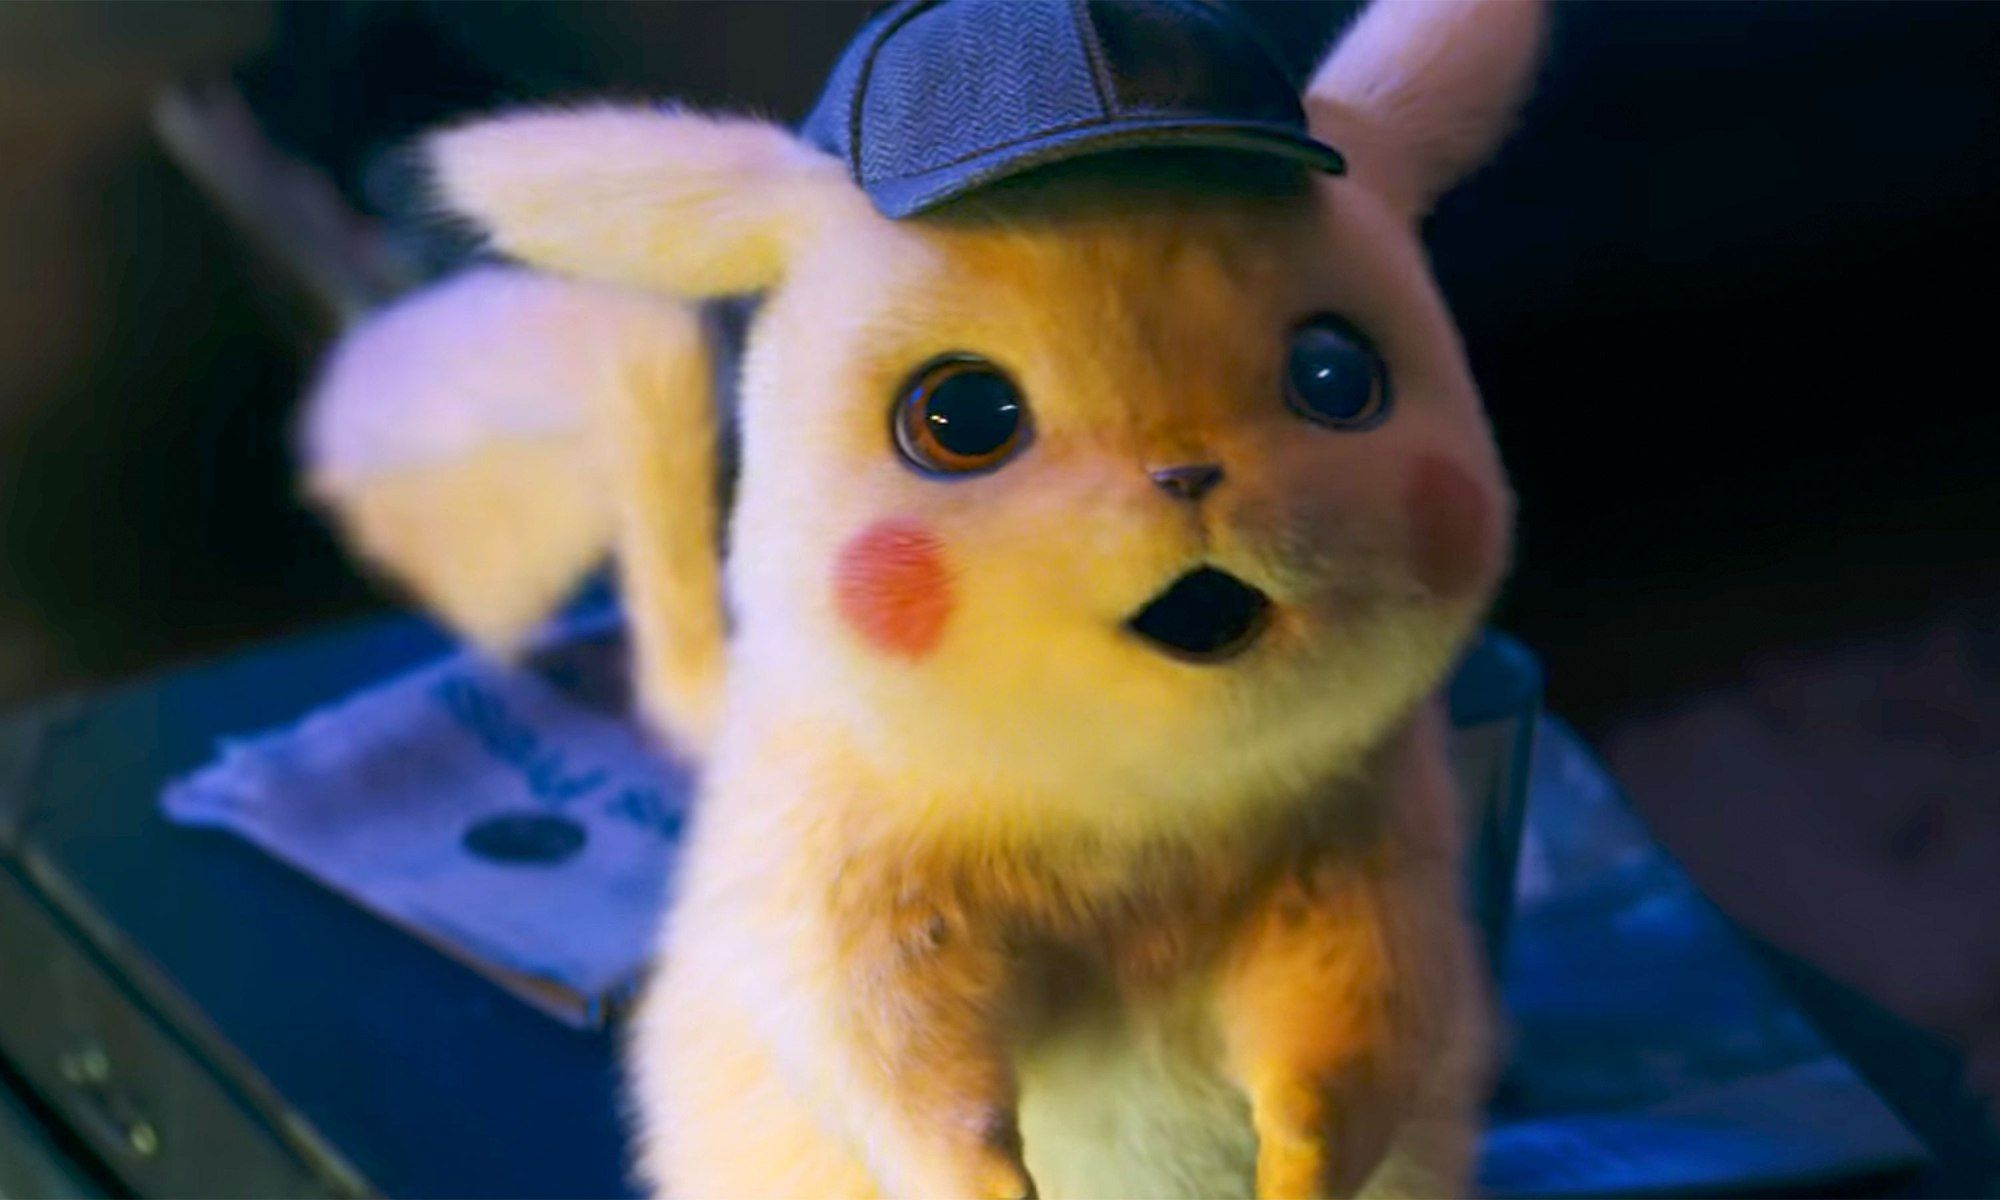 Pokemon Detective Pikachu 2019 Photo Pokemon Movies Pikachu Wallpaper Pikachu